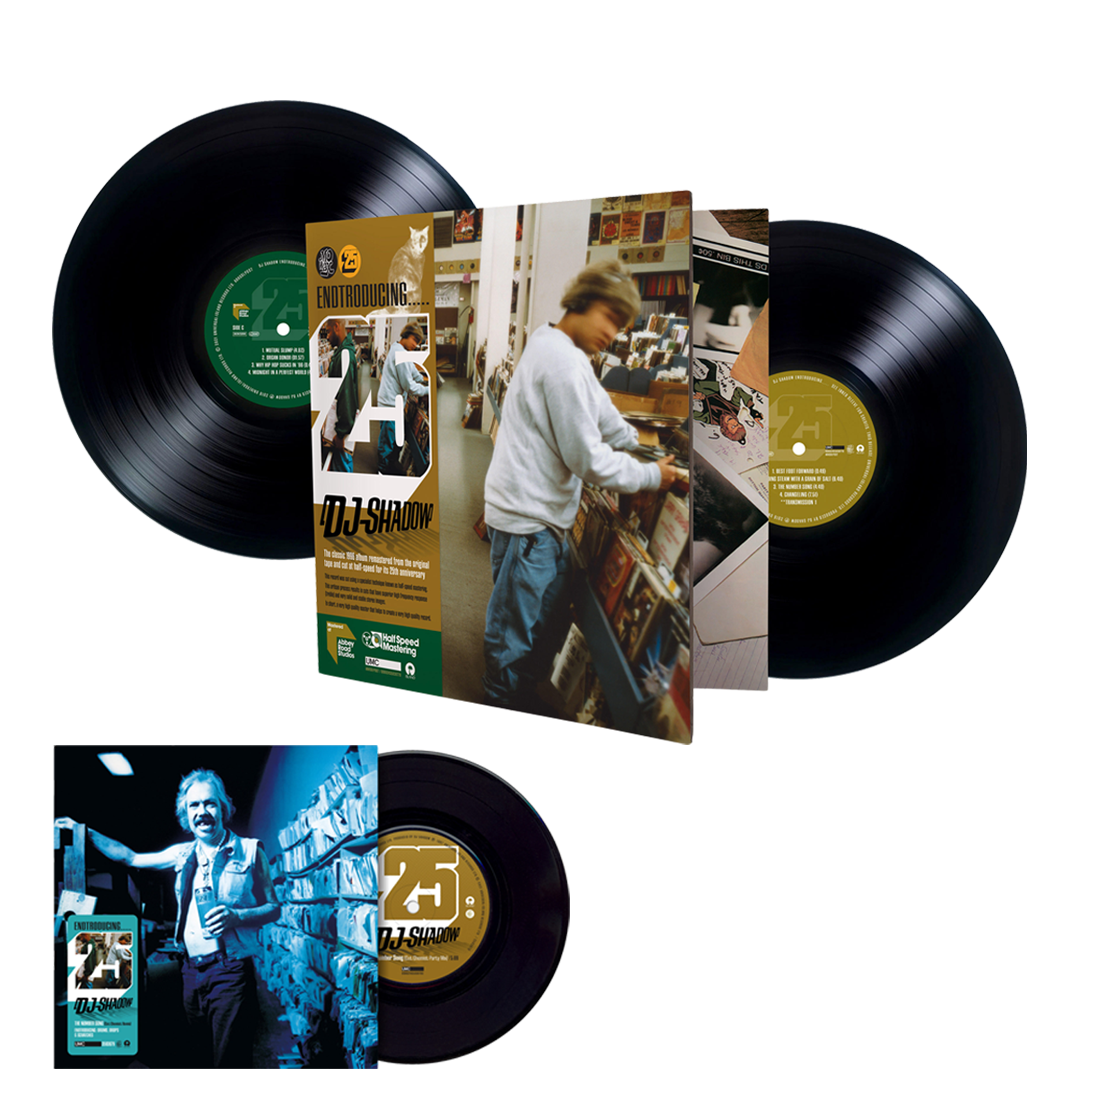 """Endtroducing – 25 (Abbey Road Half Speed Master) + The Number Song (Cut Chemist Remix) / Endtroducing: Drums , Drops & Scratches 7"""" Bundle"""